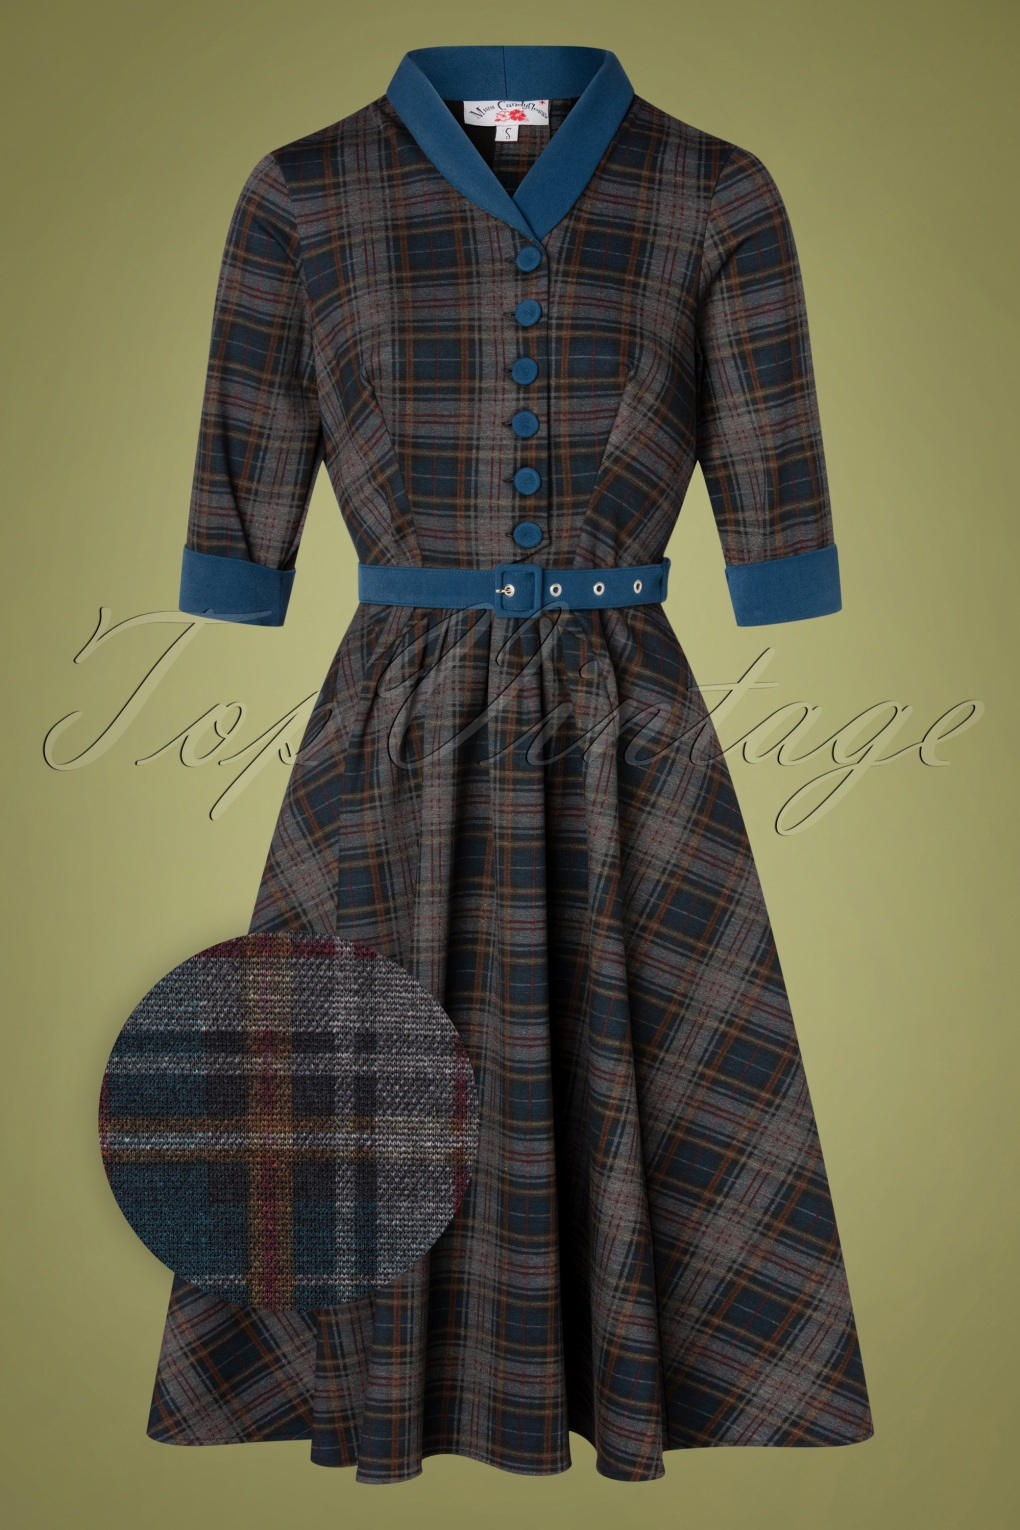 Vintage Evening Dresses and Formal Evening Gowns TopVintage exclusive  40s Lily Teagan Tartan Swing Dress in Midnight Blue £117.54 AT vintagedancer.com